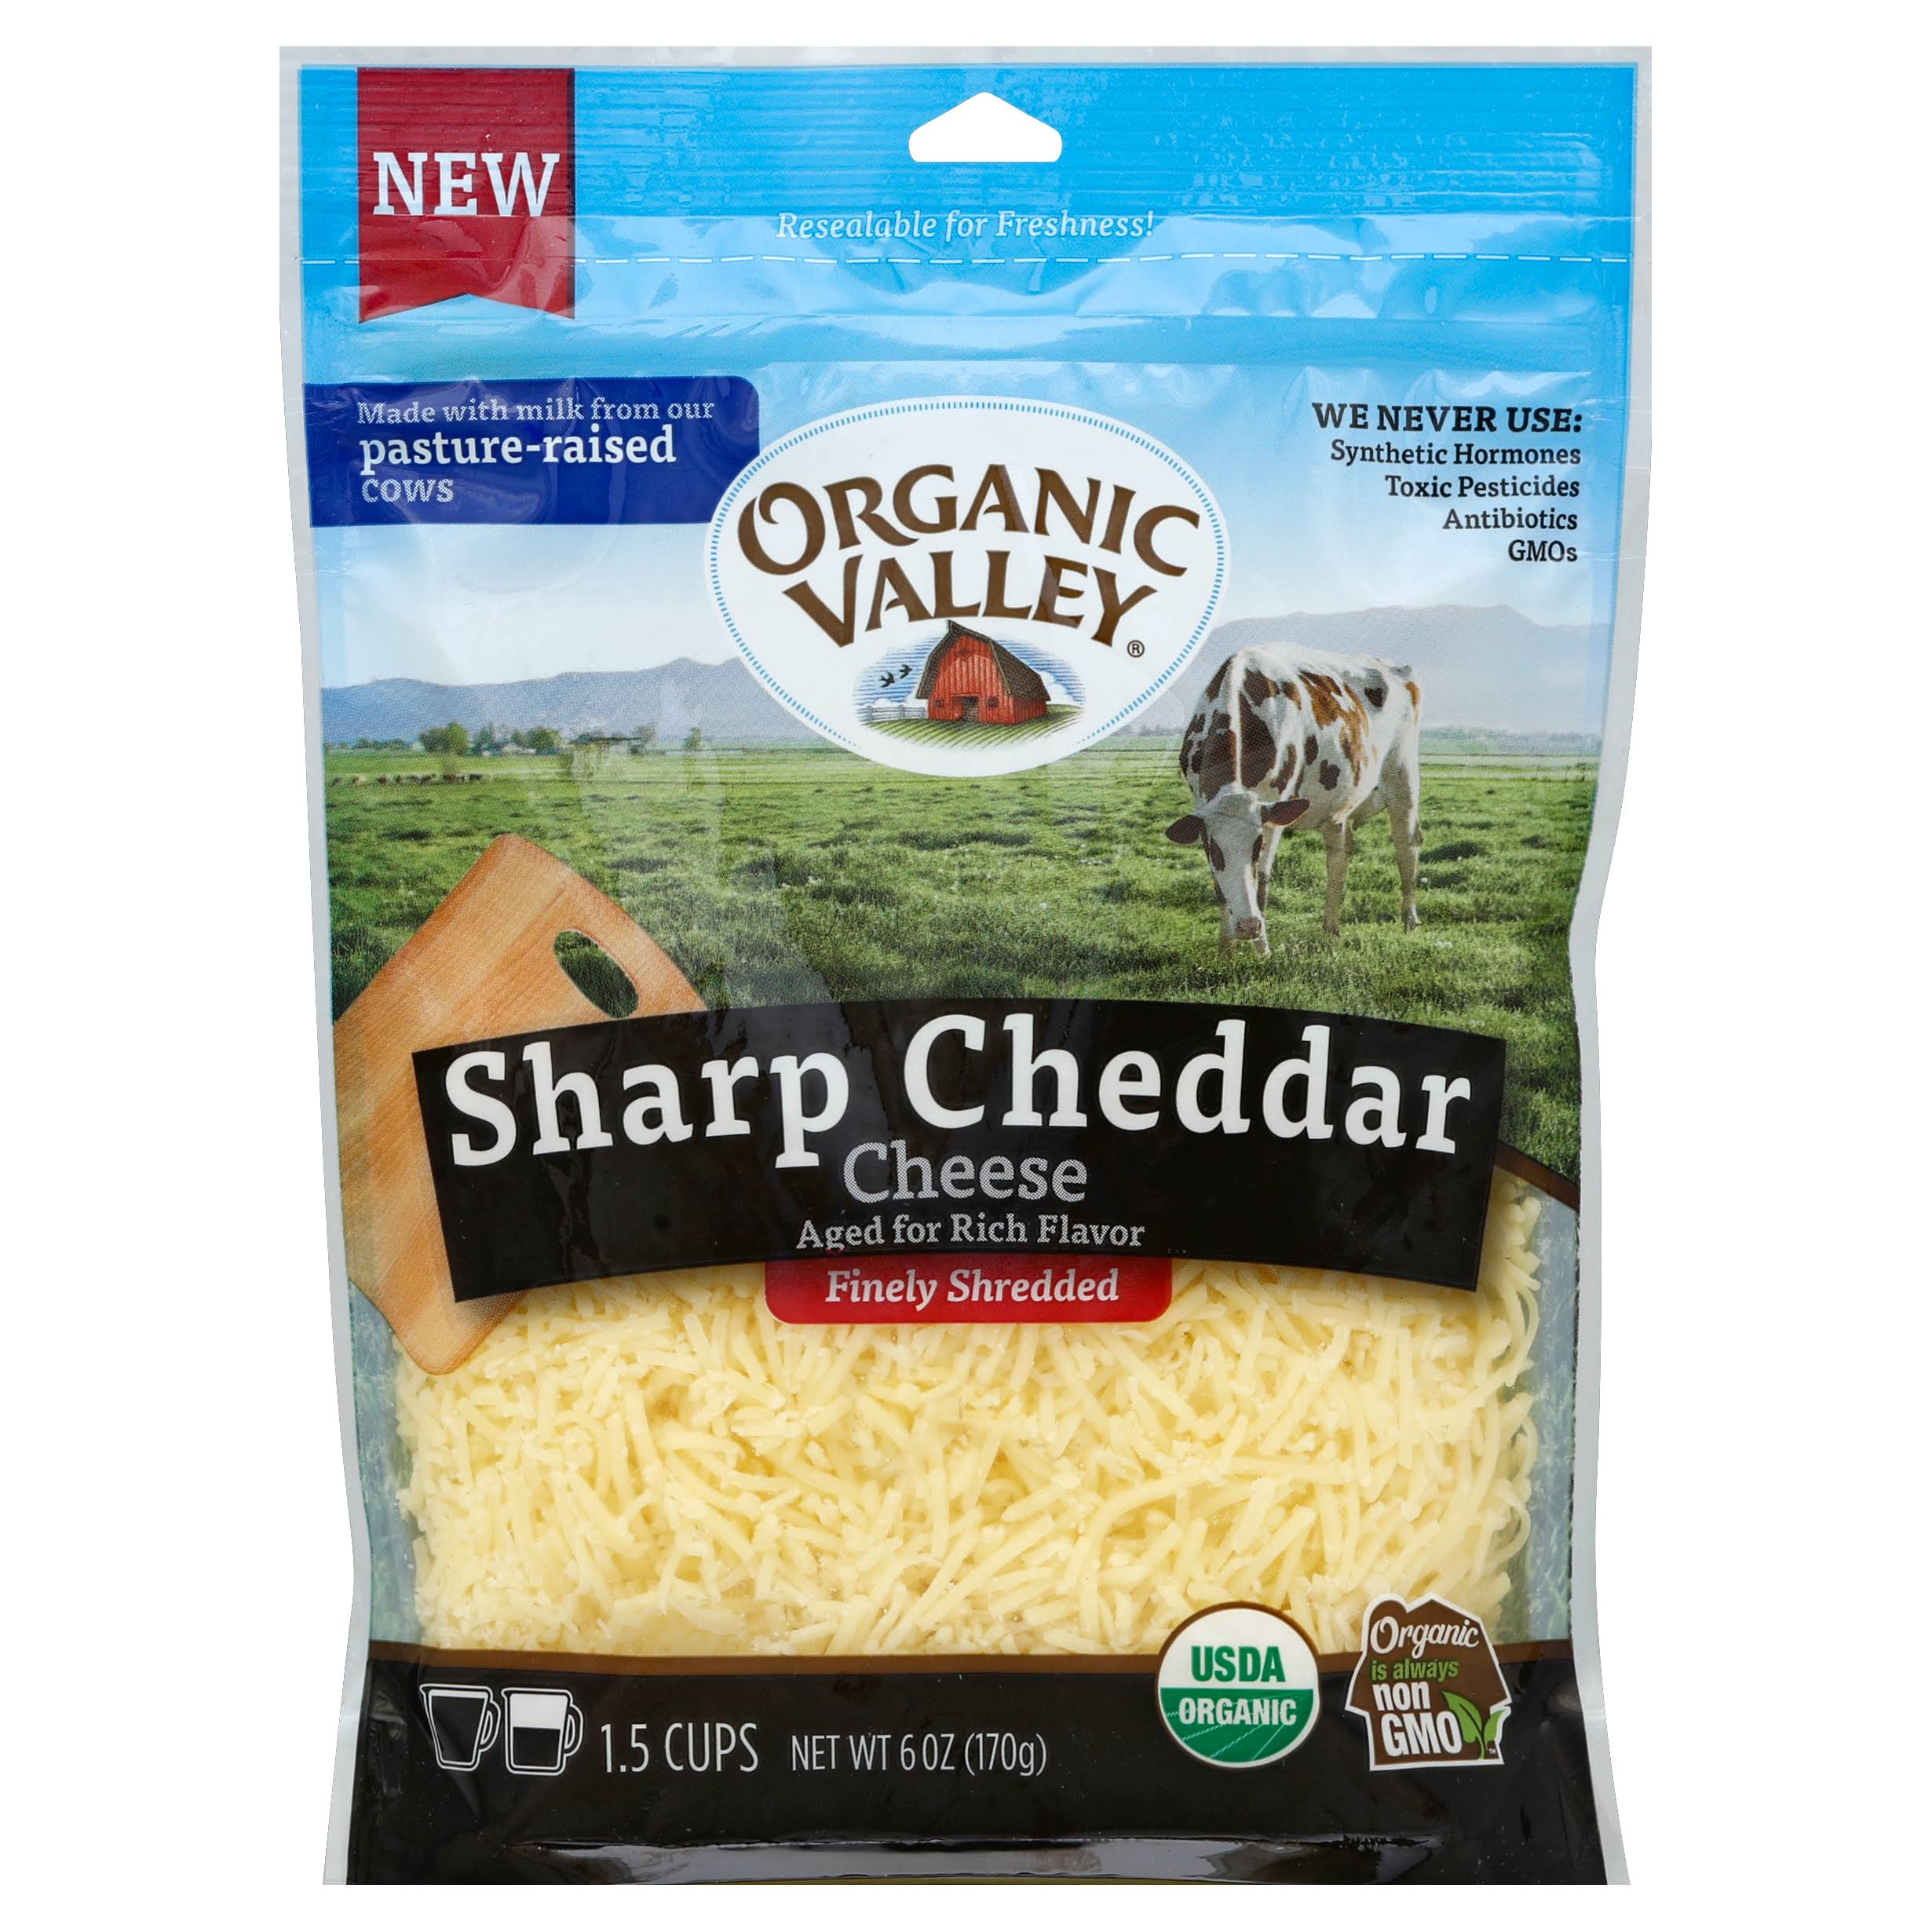 Organic Valley Cheese, Finely Shredded, Sharp Cheddar - 6 oz